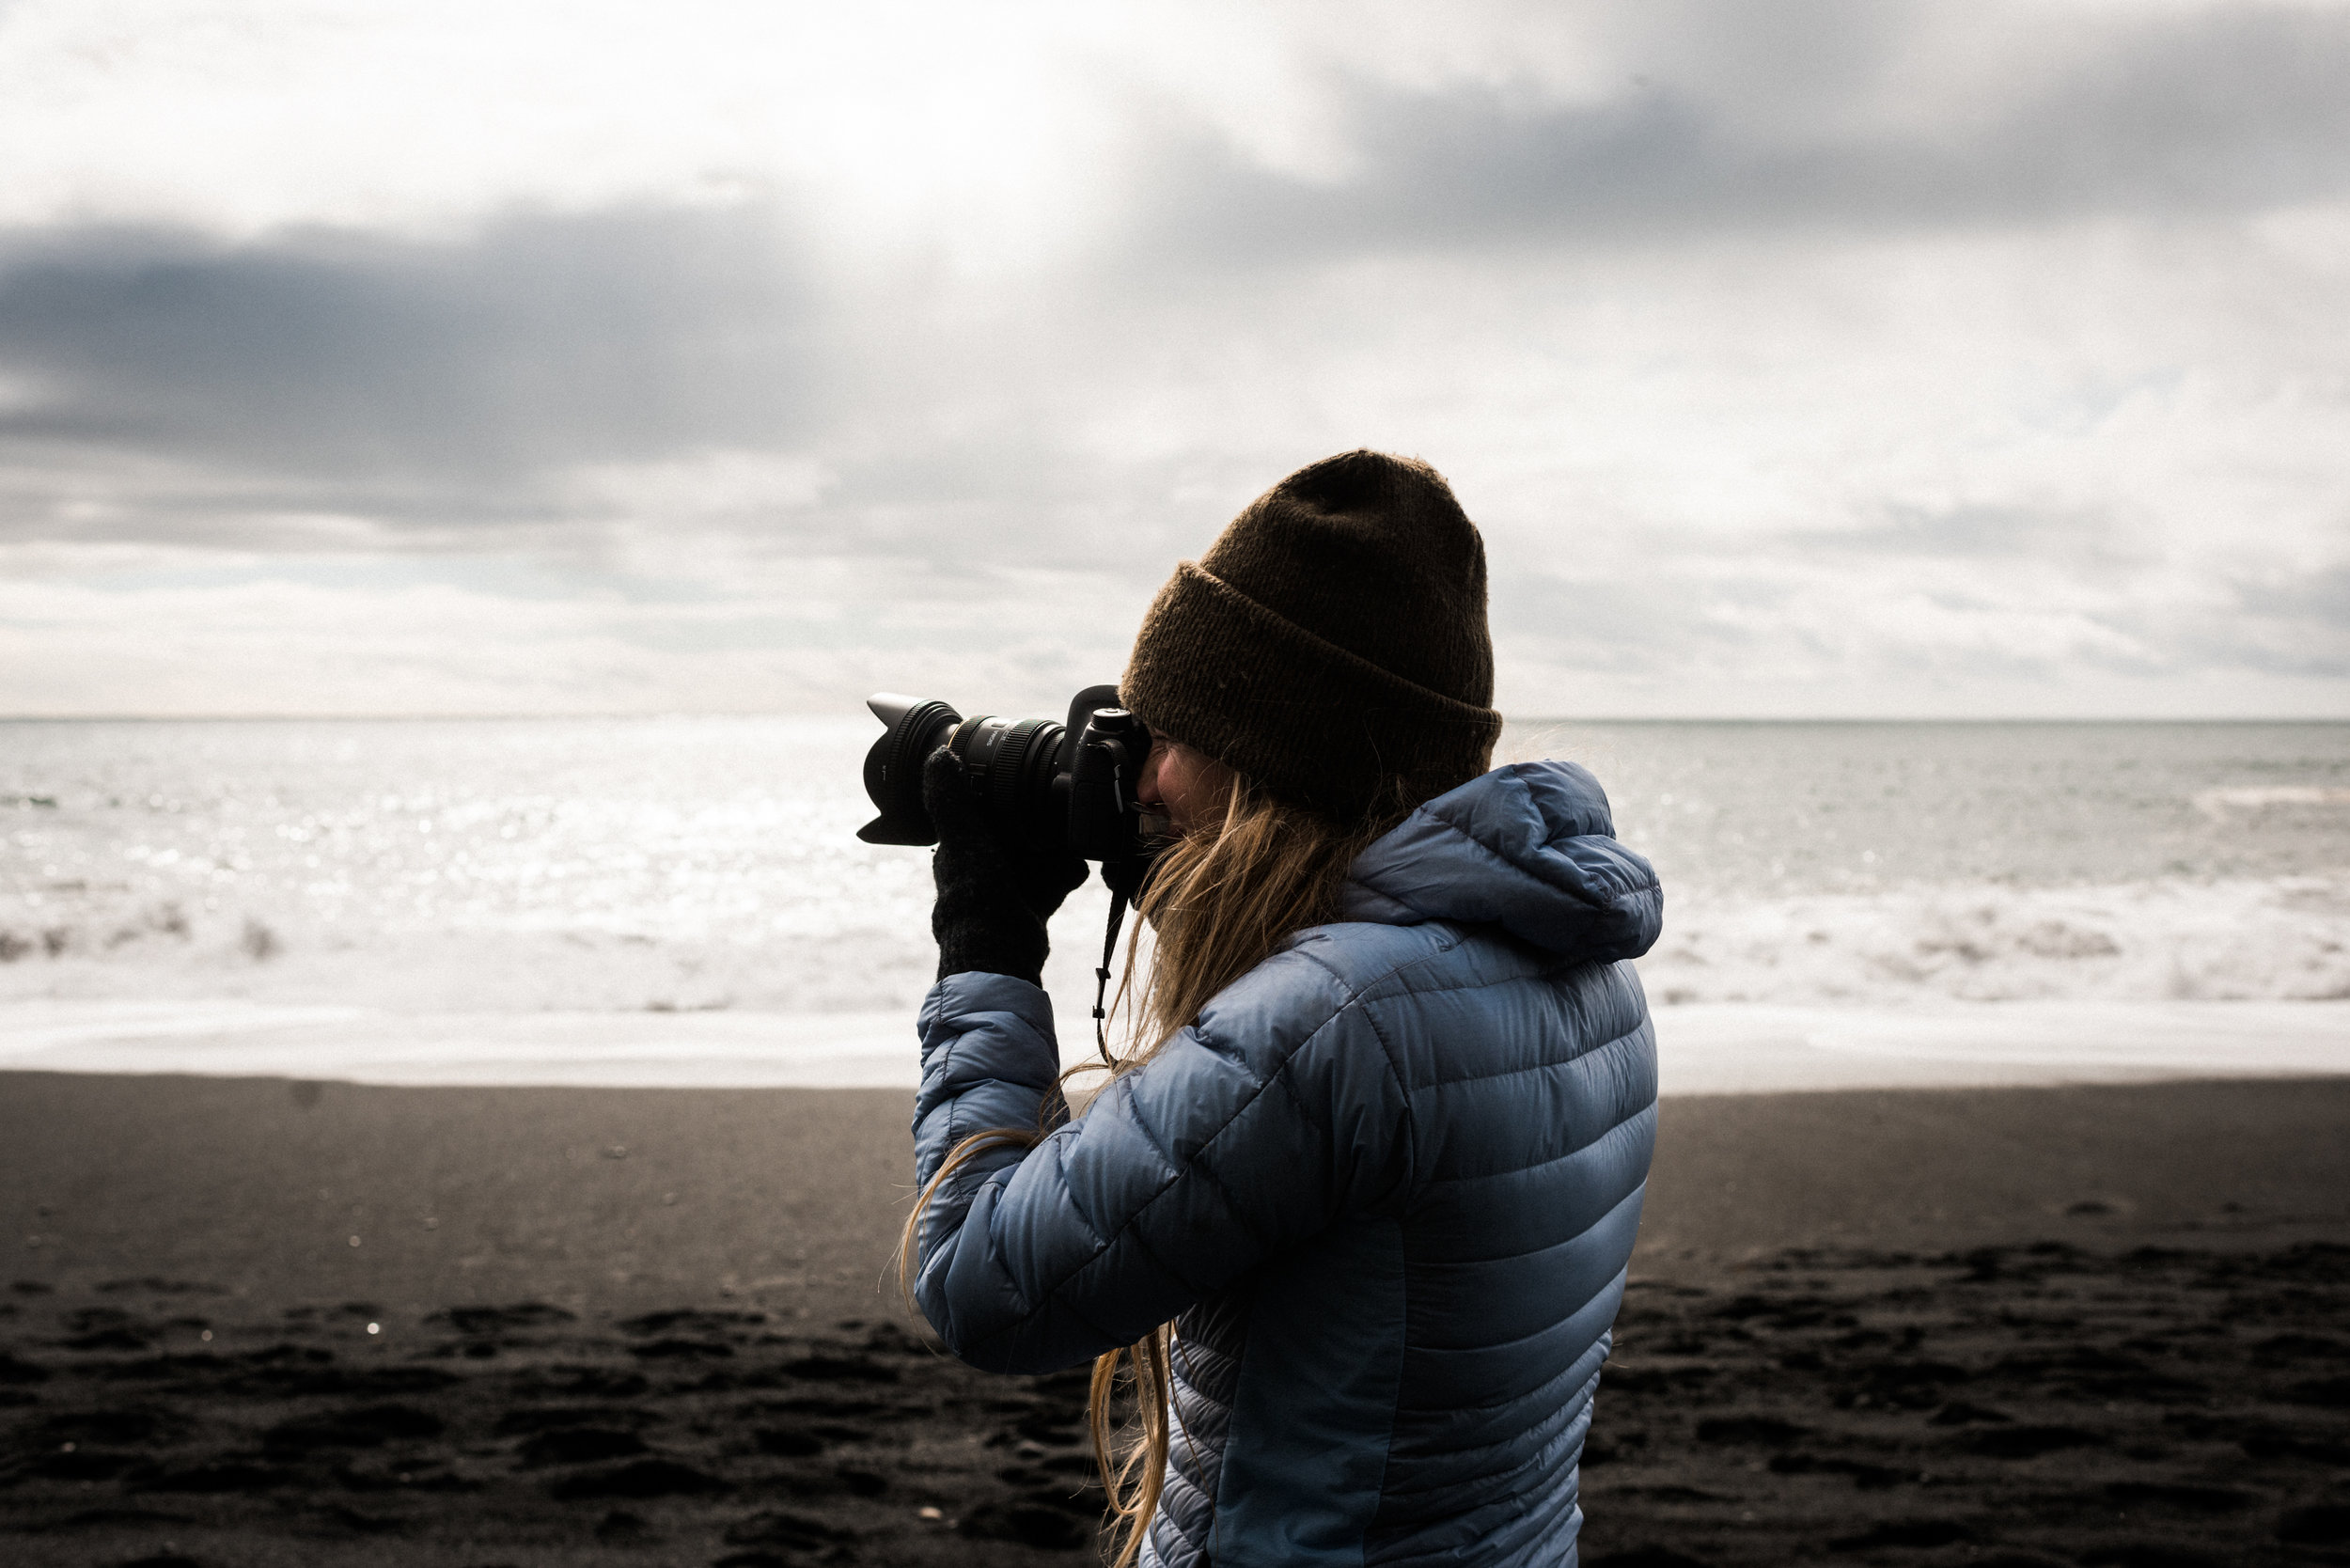 ICELAND_WOMAN_PHOTOGRAPHER_TARASHUPE_OUTDOOR_PHOTOGRAPHY_137.jpg